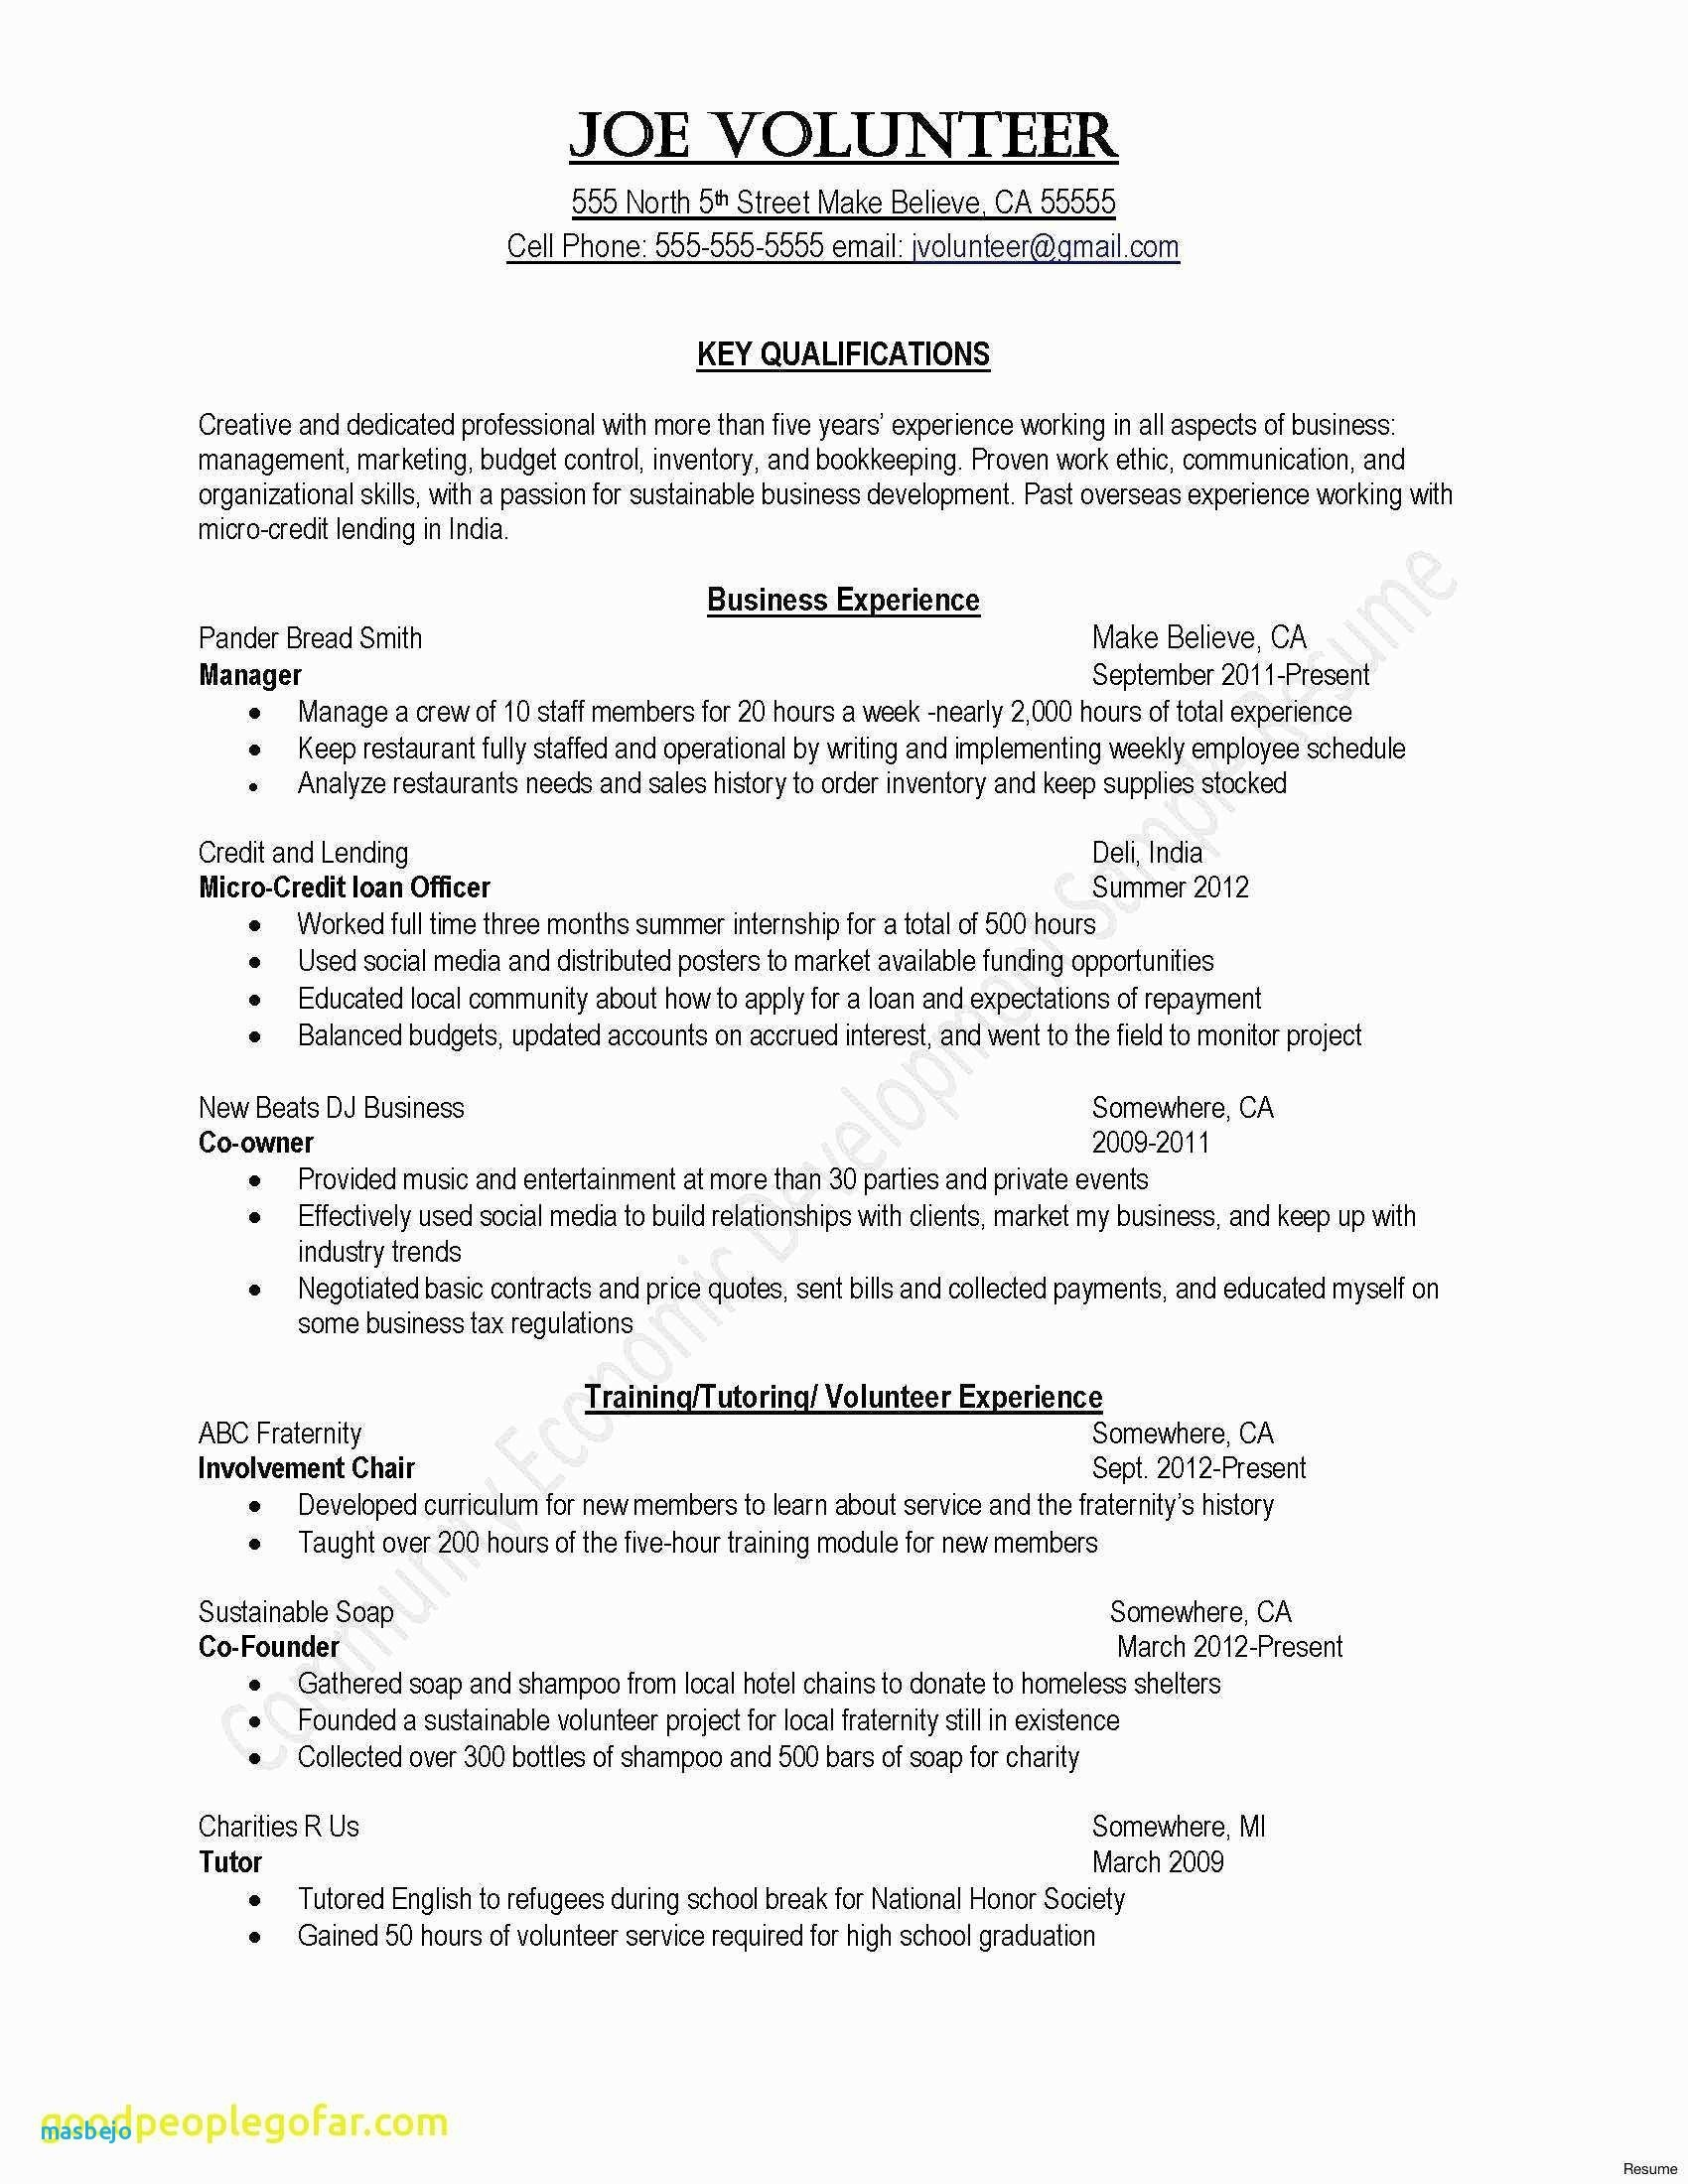 Web Designer Resume - Production associate Resume – Resume format Examples 2018